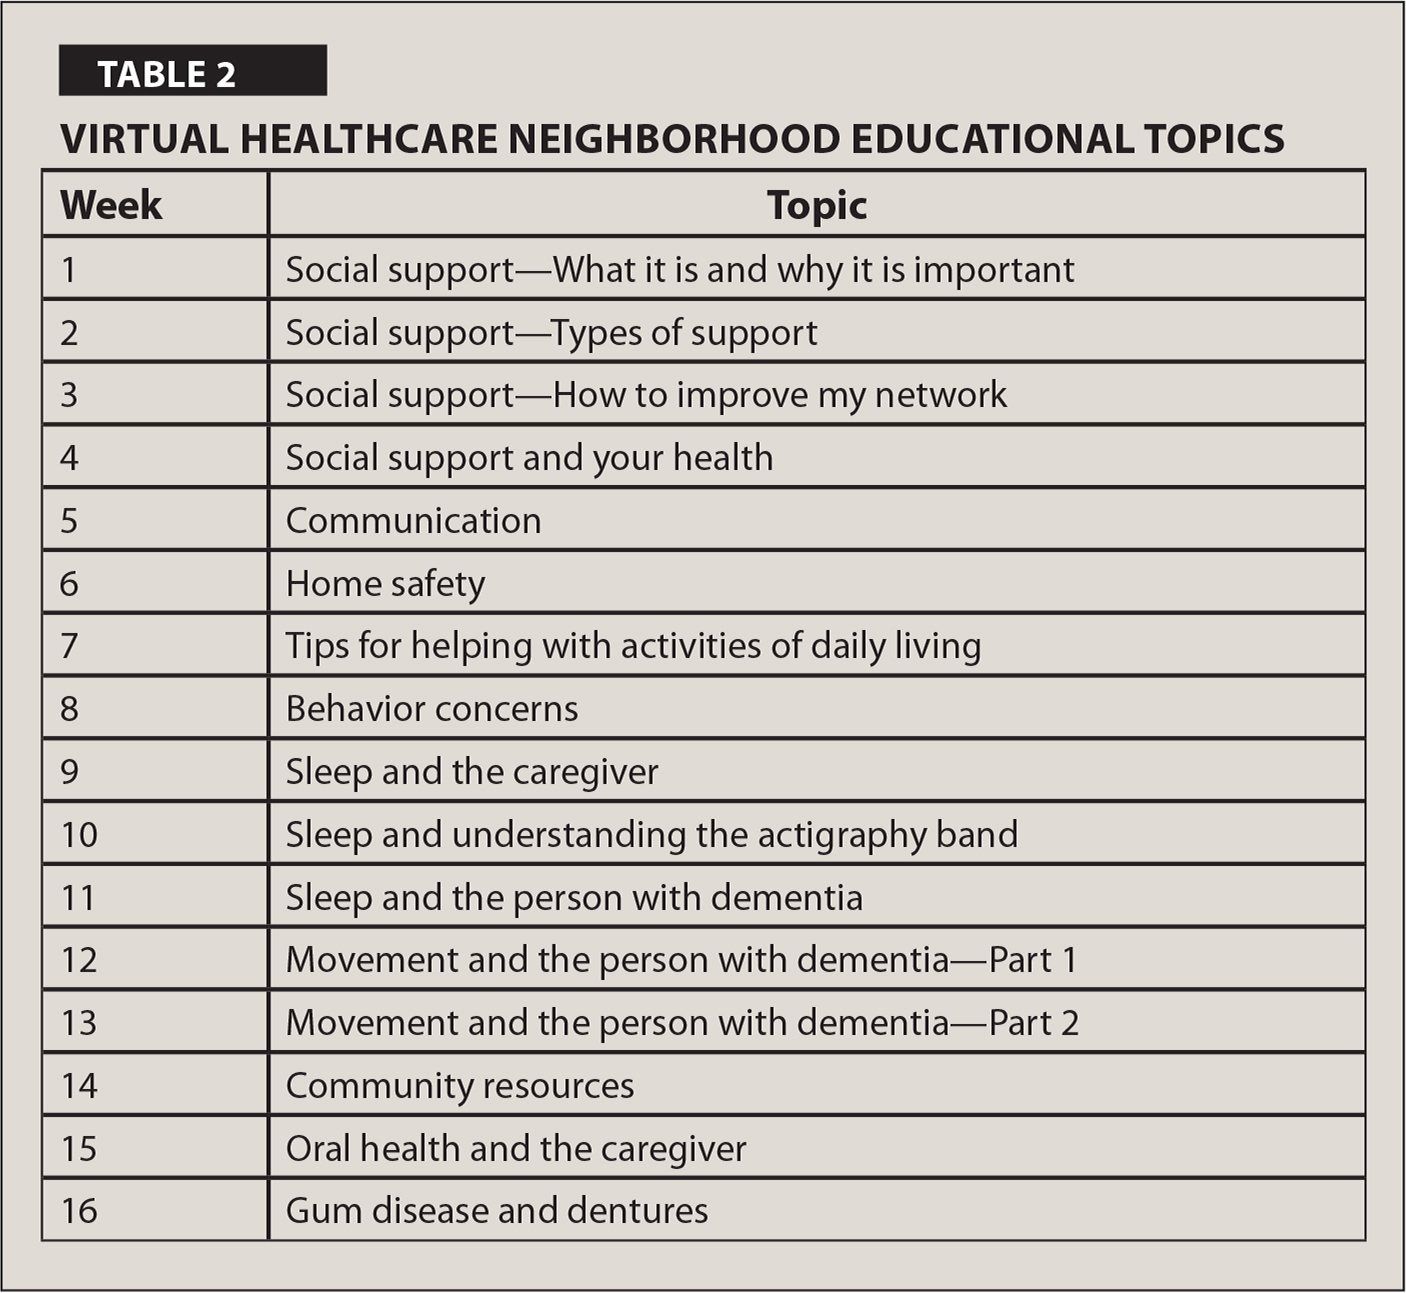 Virtual Healthcare Neighborhood Educational Topics